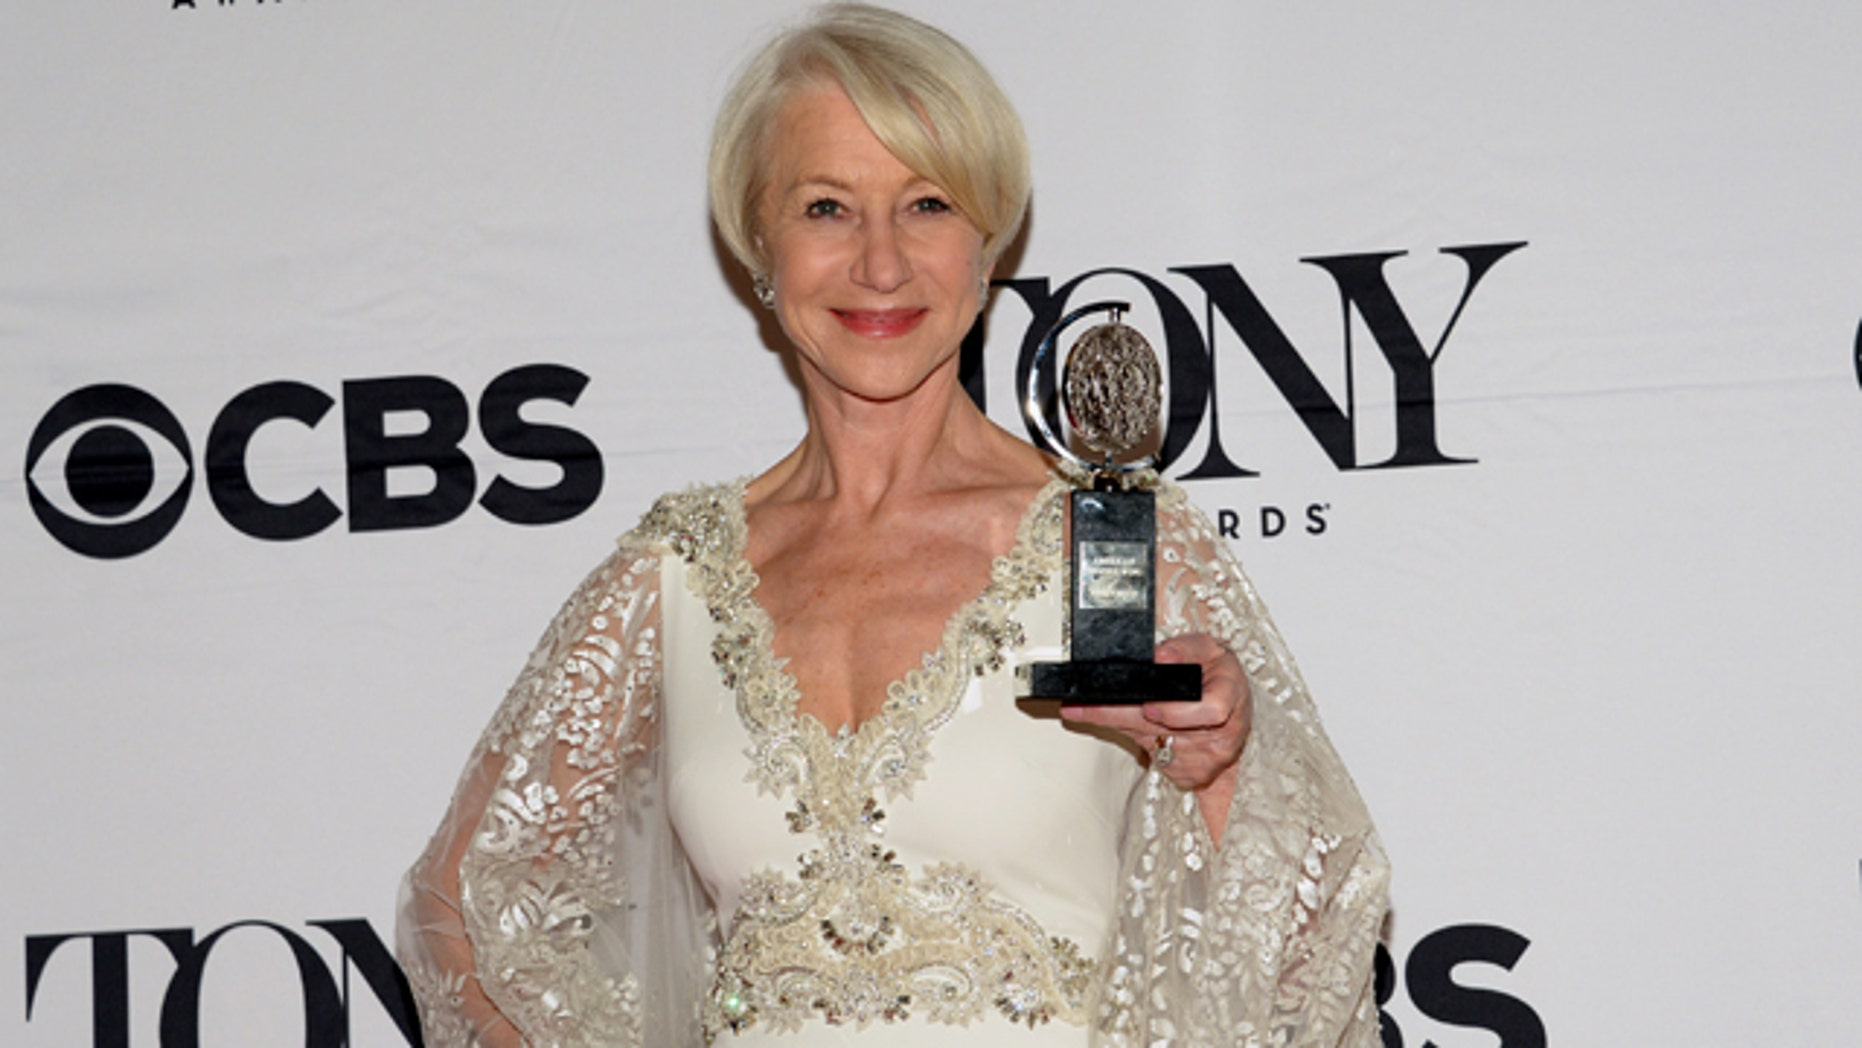 June 7, 2015: Helen Mirren poses in the press room with the award for best performance by an actress in a leading role in a play for The Audience at the 69th annual Tony Awards in New York. (Photo by Evan Agostini/Invision/AP)